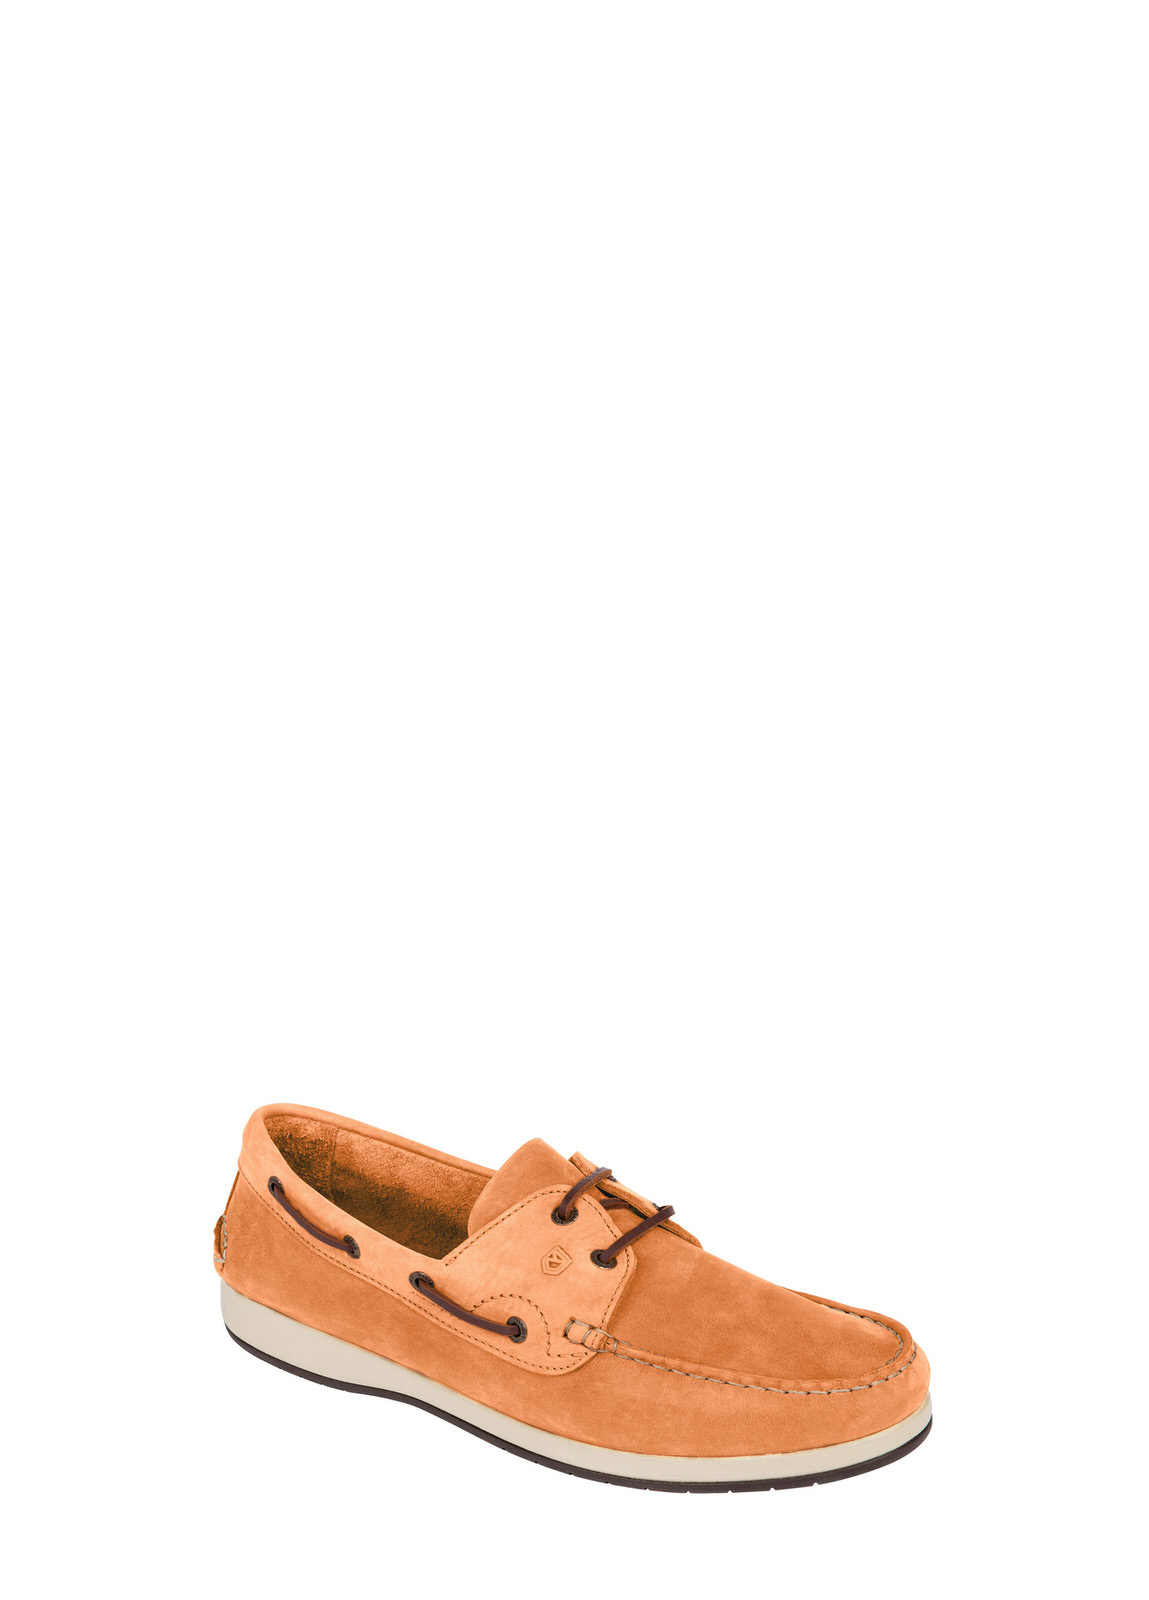 Dubarry_Pacific X LT Deck Shoe - Whiskey_Image_1